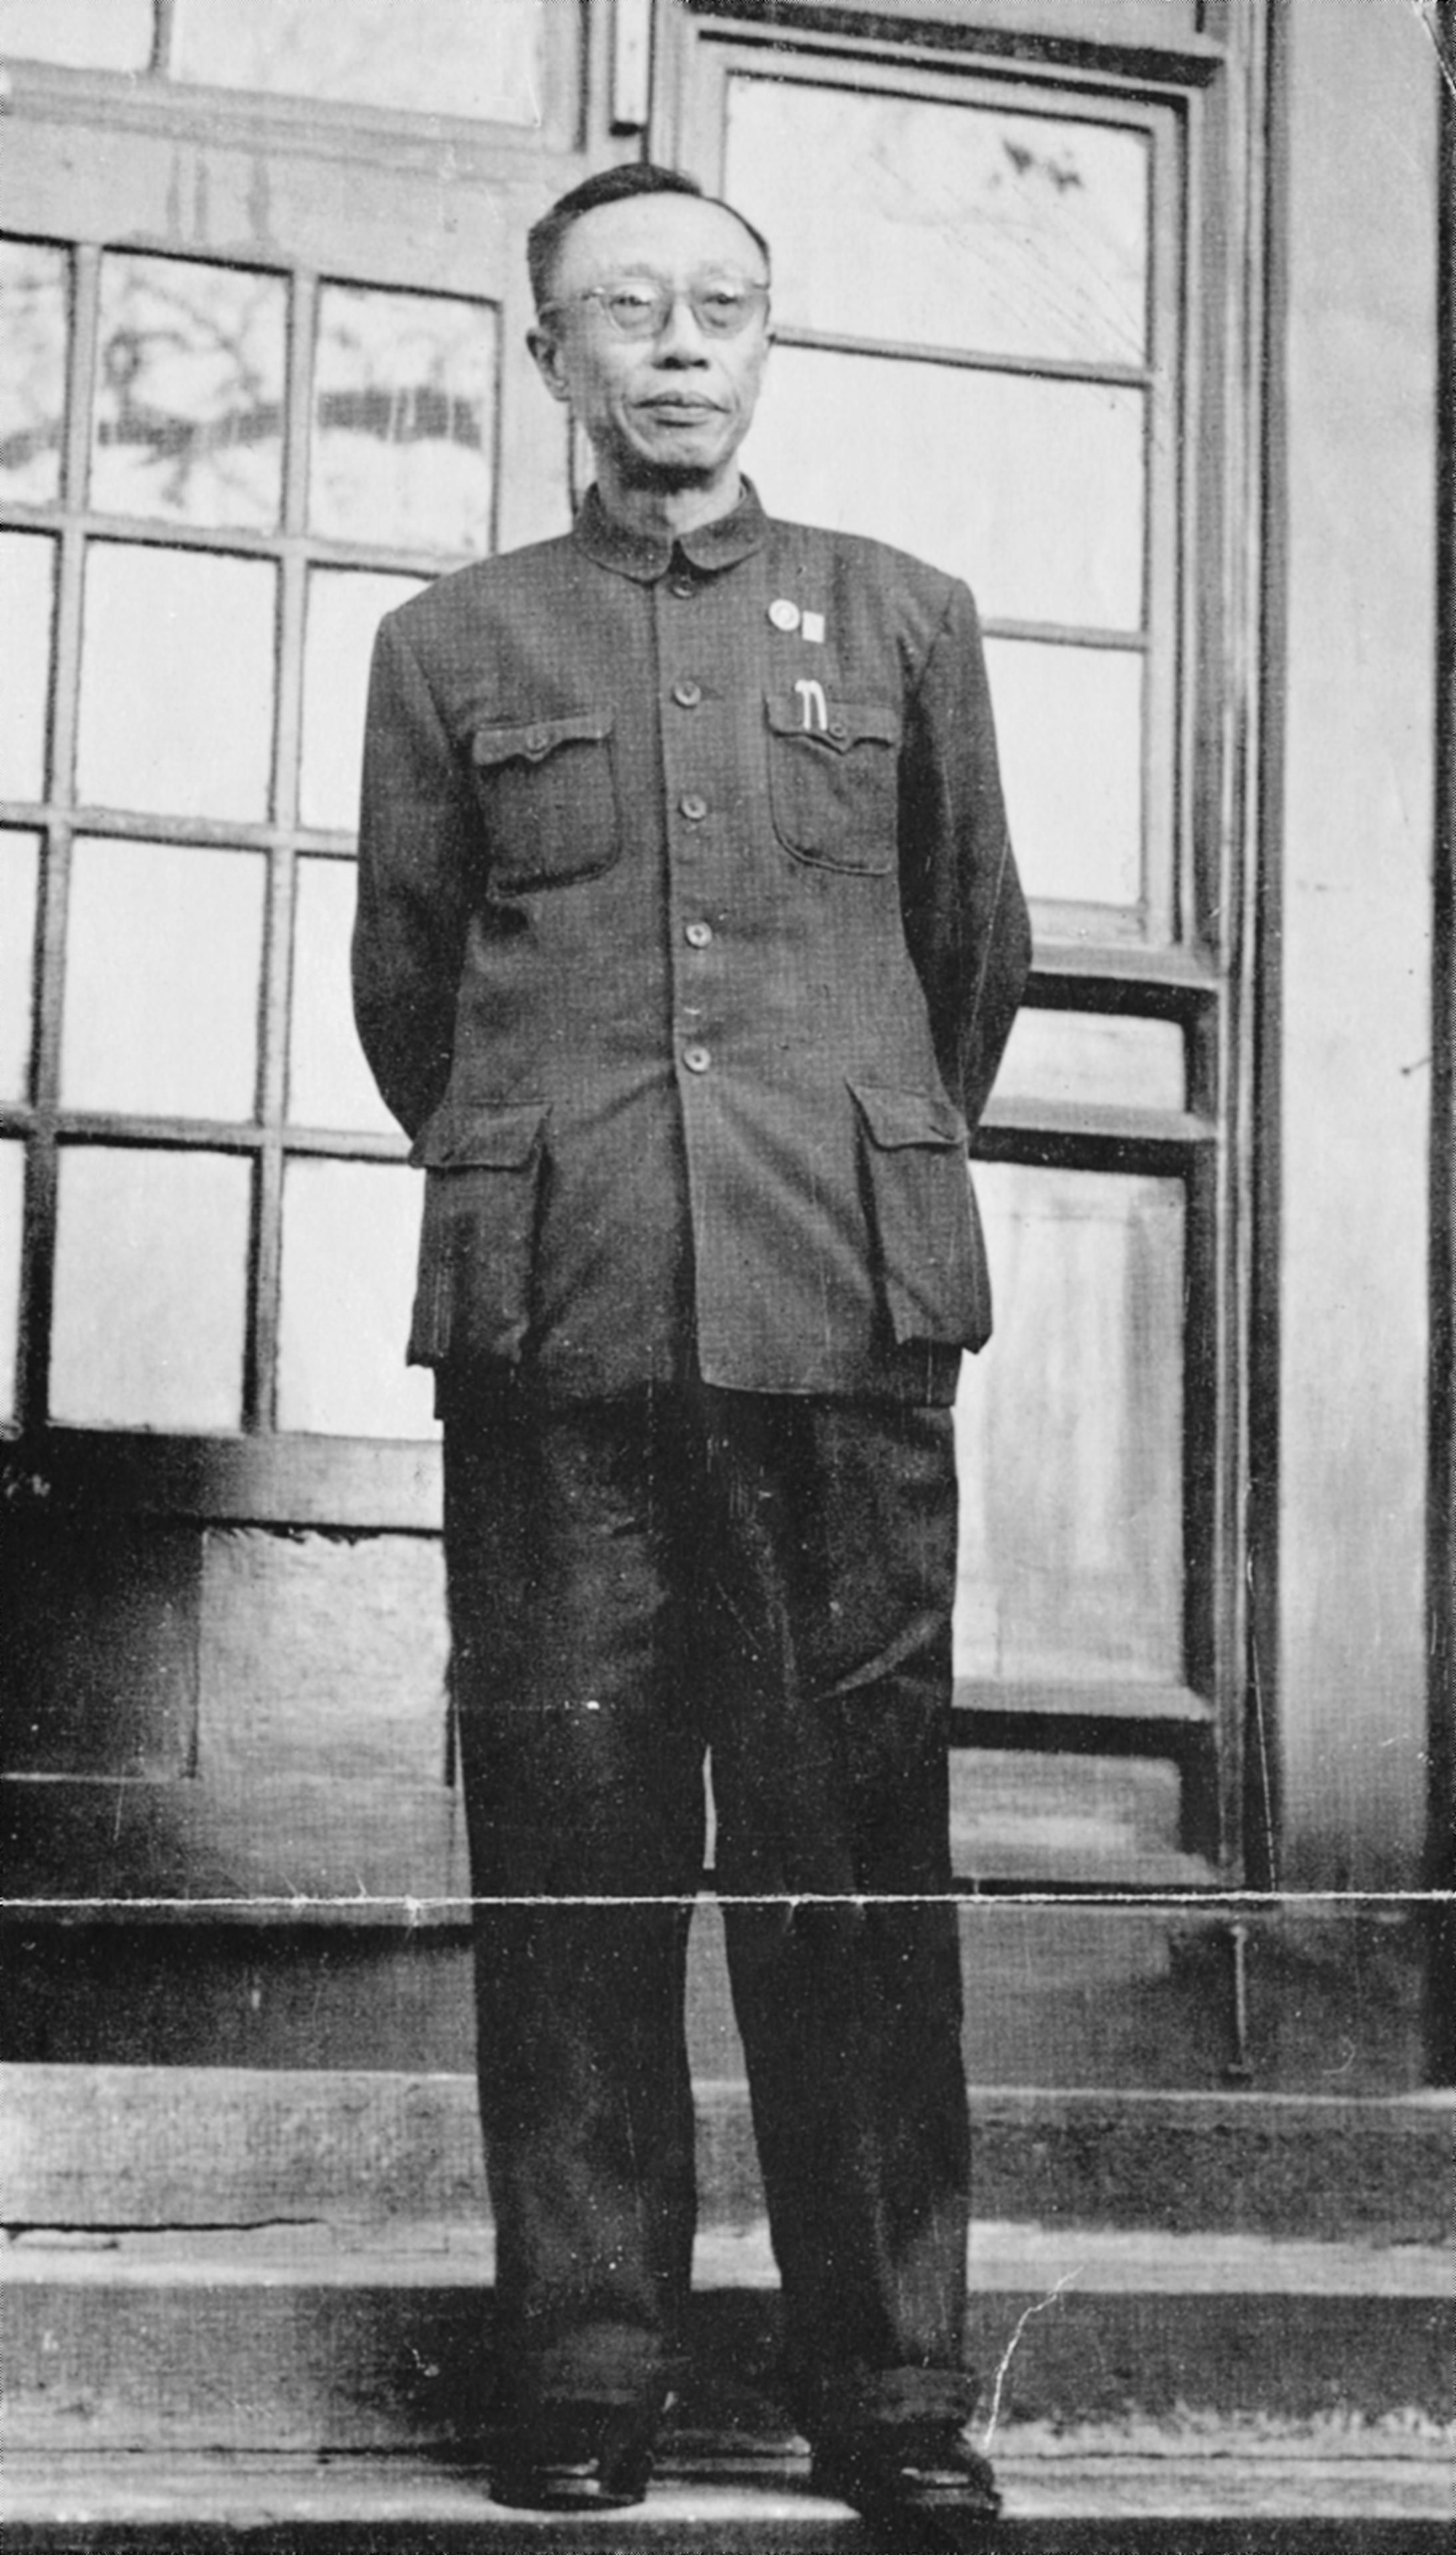 Emperor Pu Yi, who went from being a ruler to a citizen 30